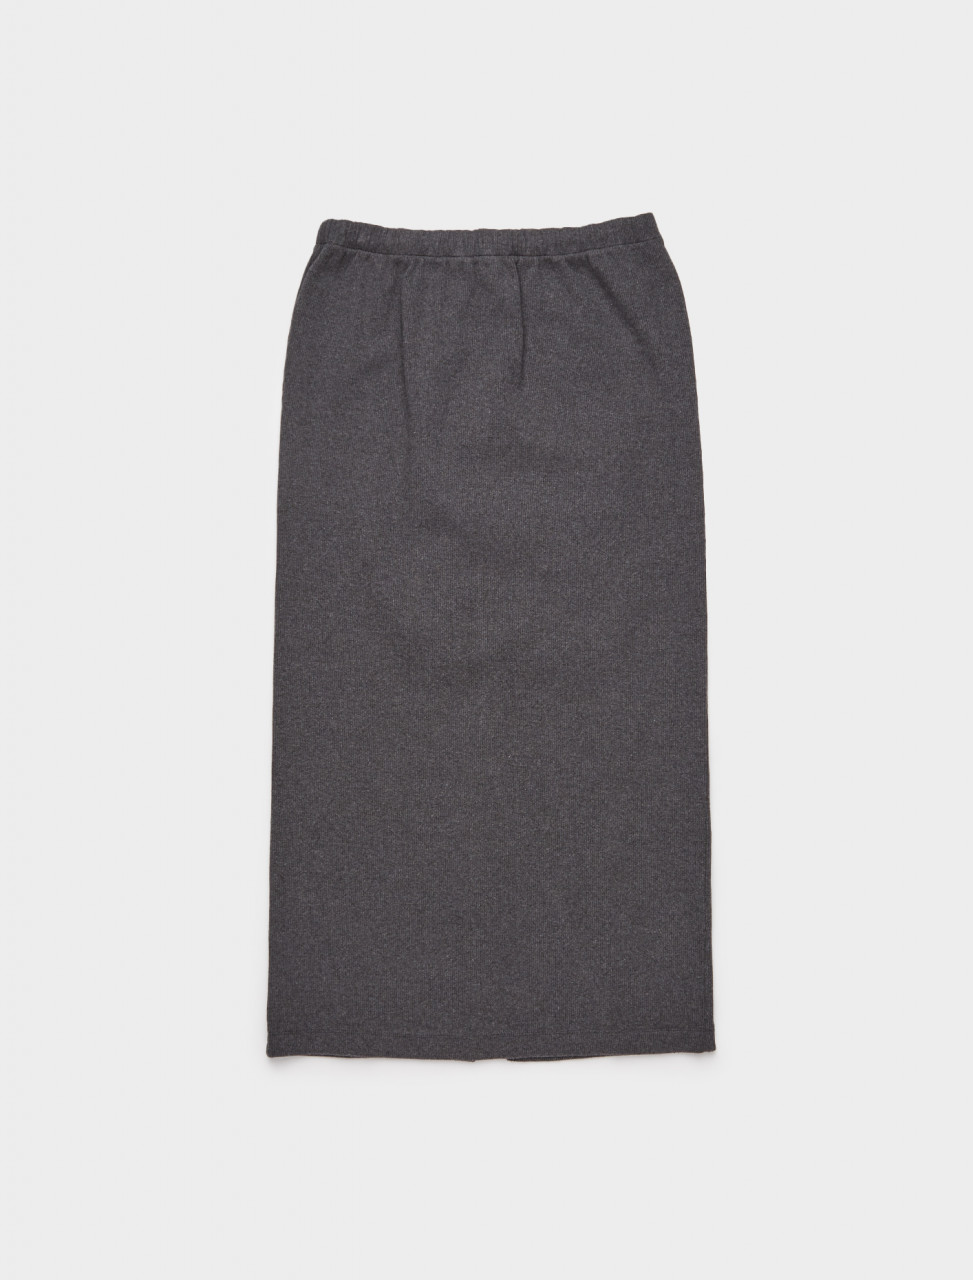 150-W4206RD OUR LEGACY RIB TUBE SKIRT GREY MELANGE RIB